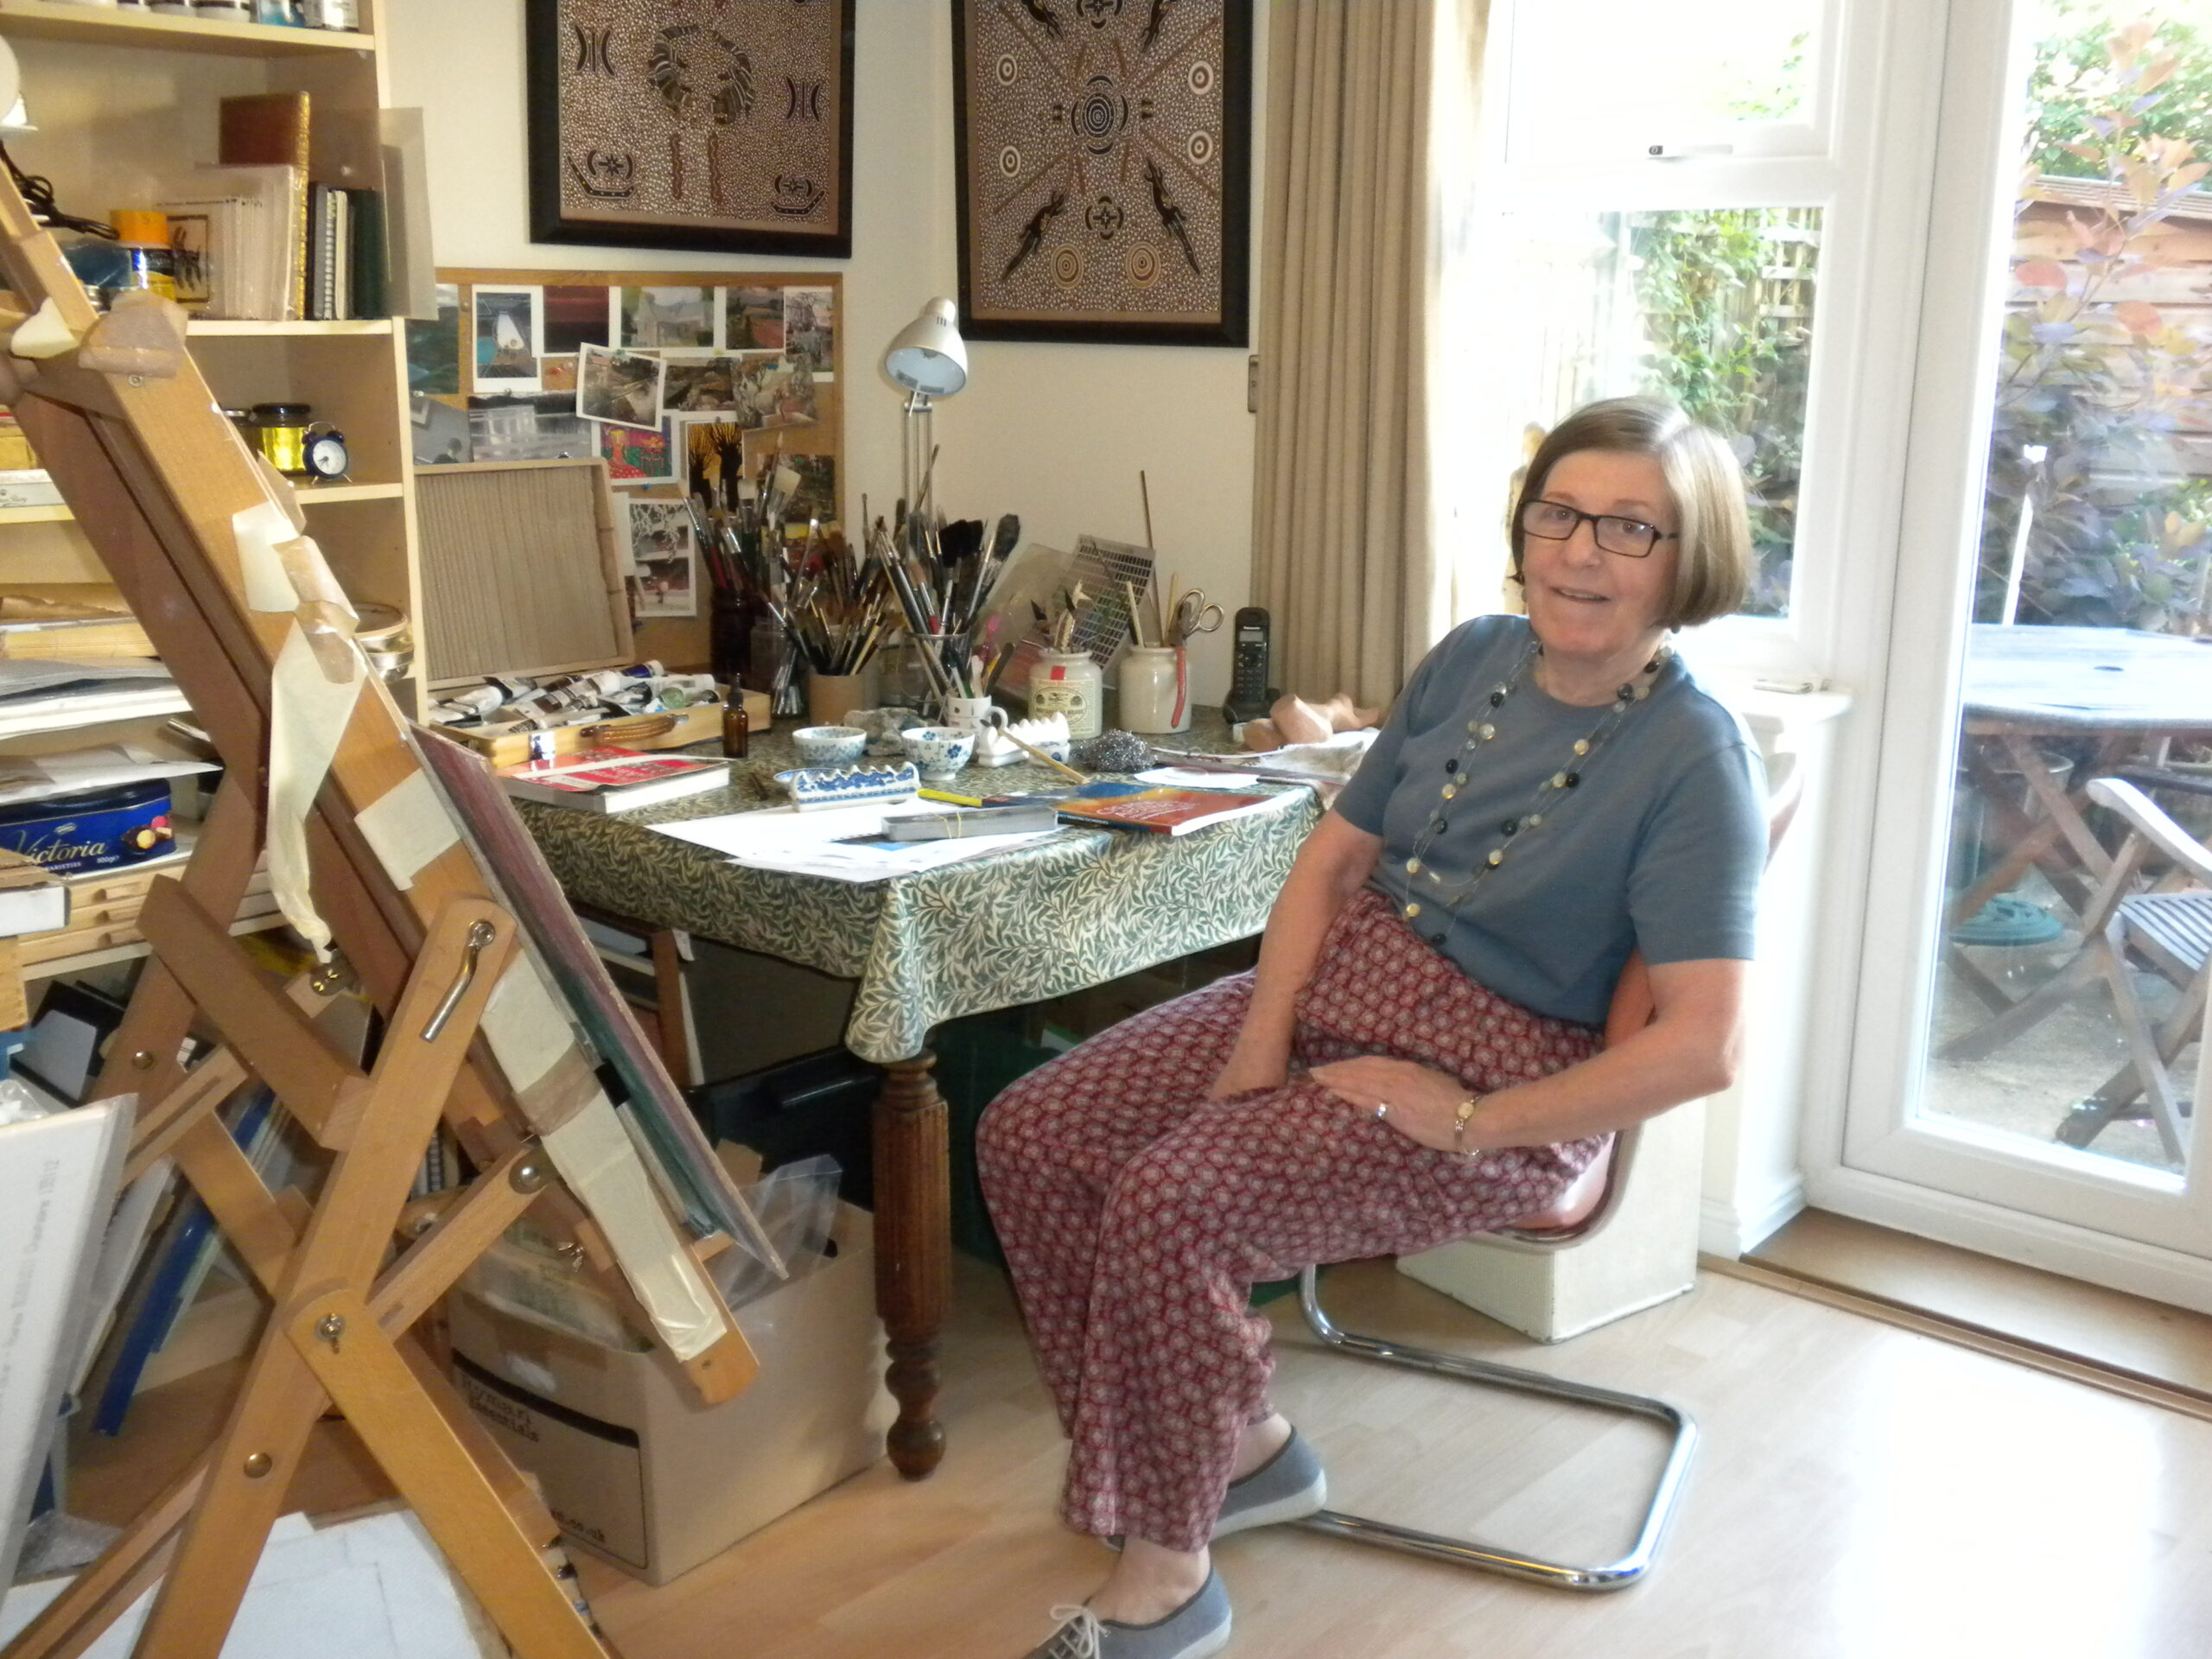 Caroline in her studio at home - in summer!